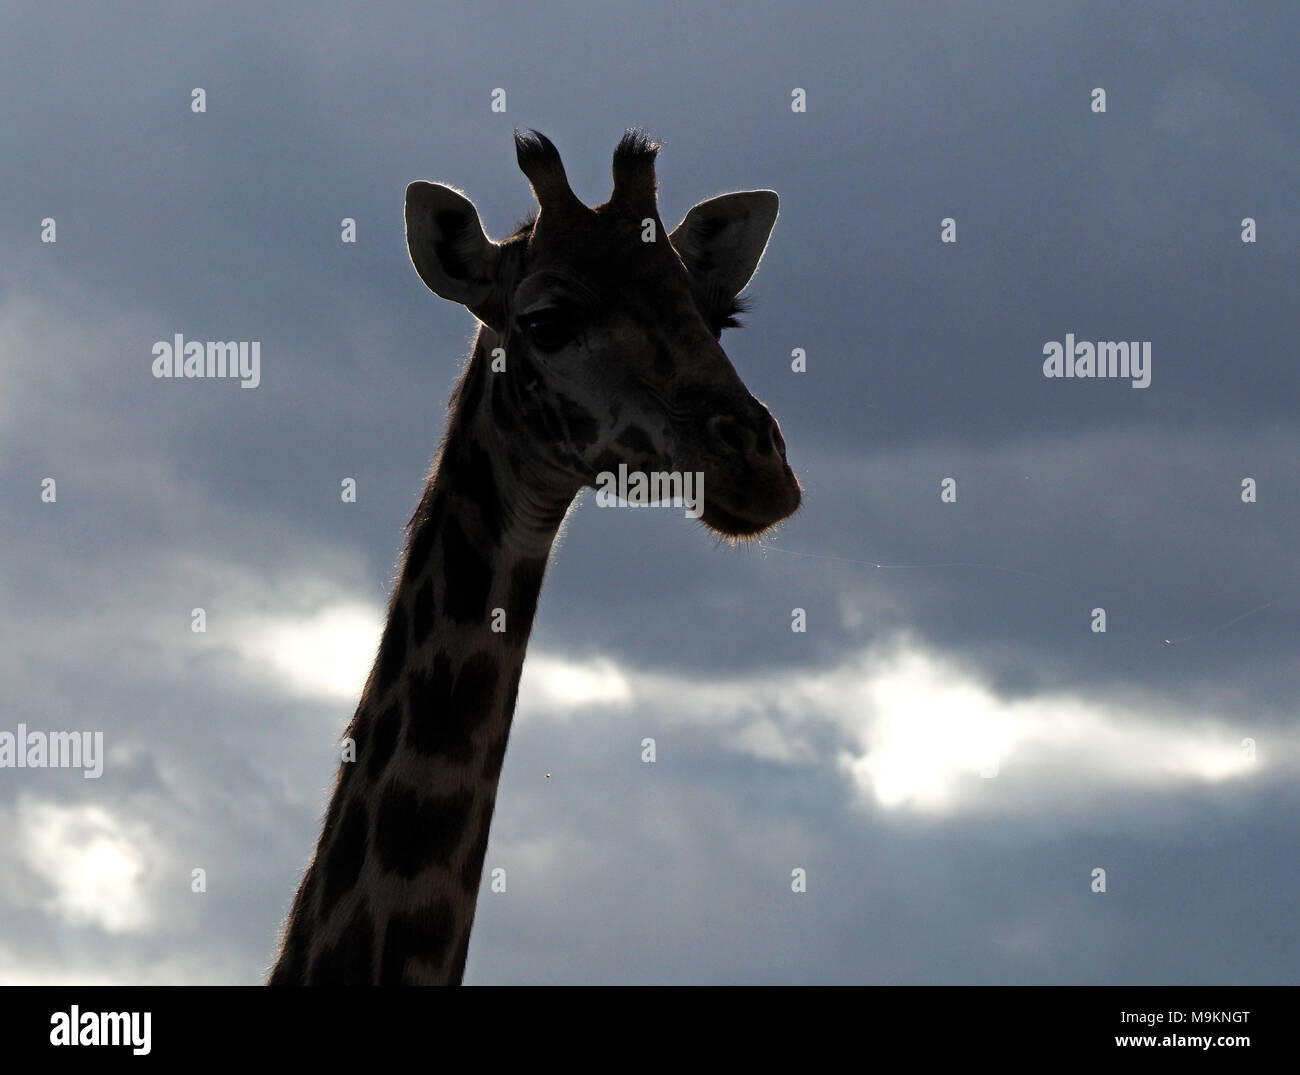 backlit head of Masai Giraffe (Giraffa tippelskirchi) shows thread of saliva glistening in the wind against grey sky above Masai Mara, Kenya, Africa - Stock Image